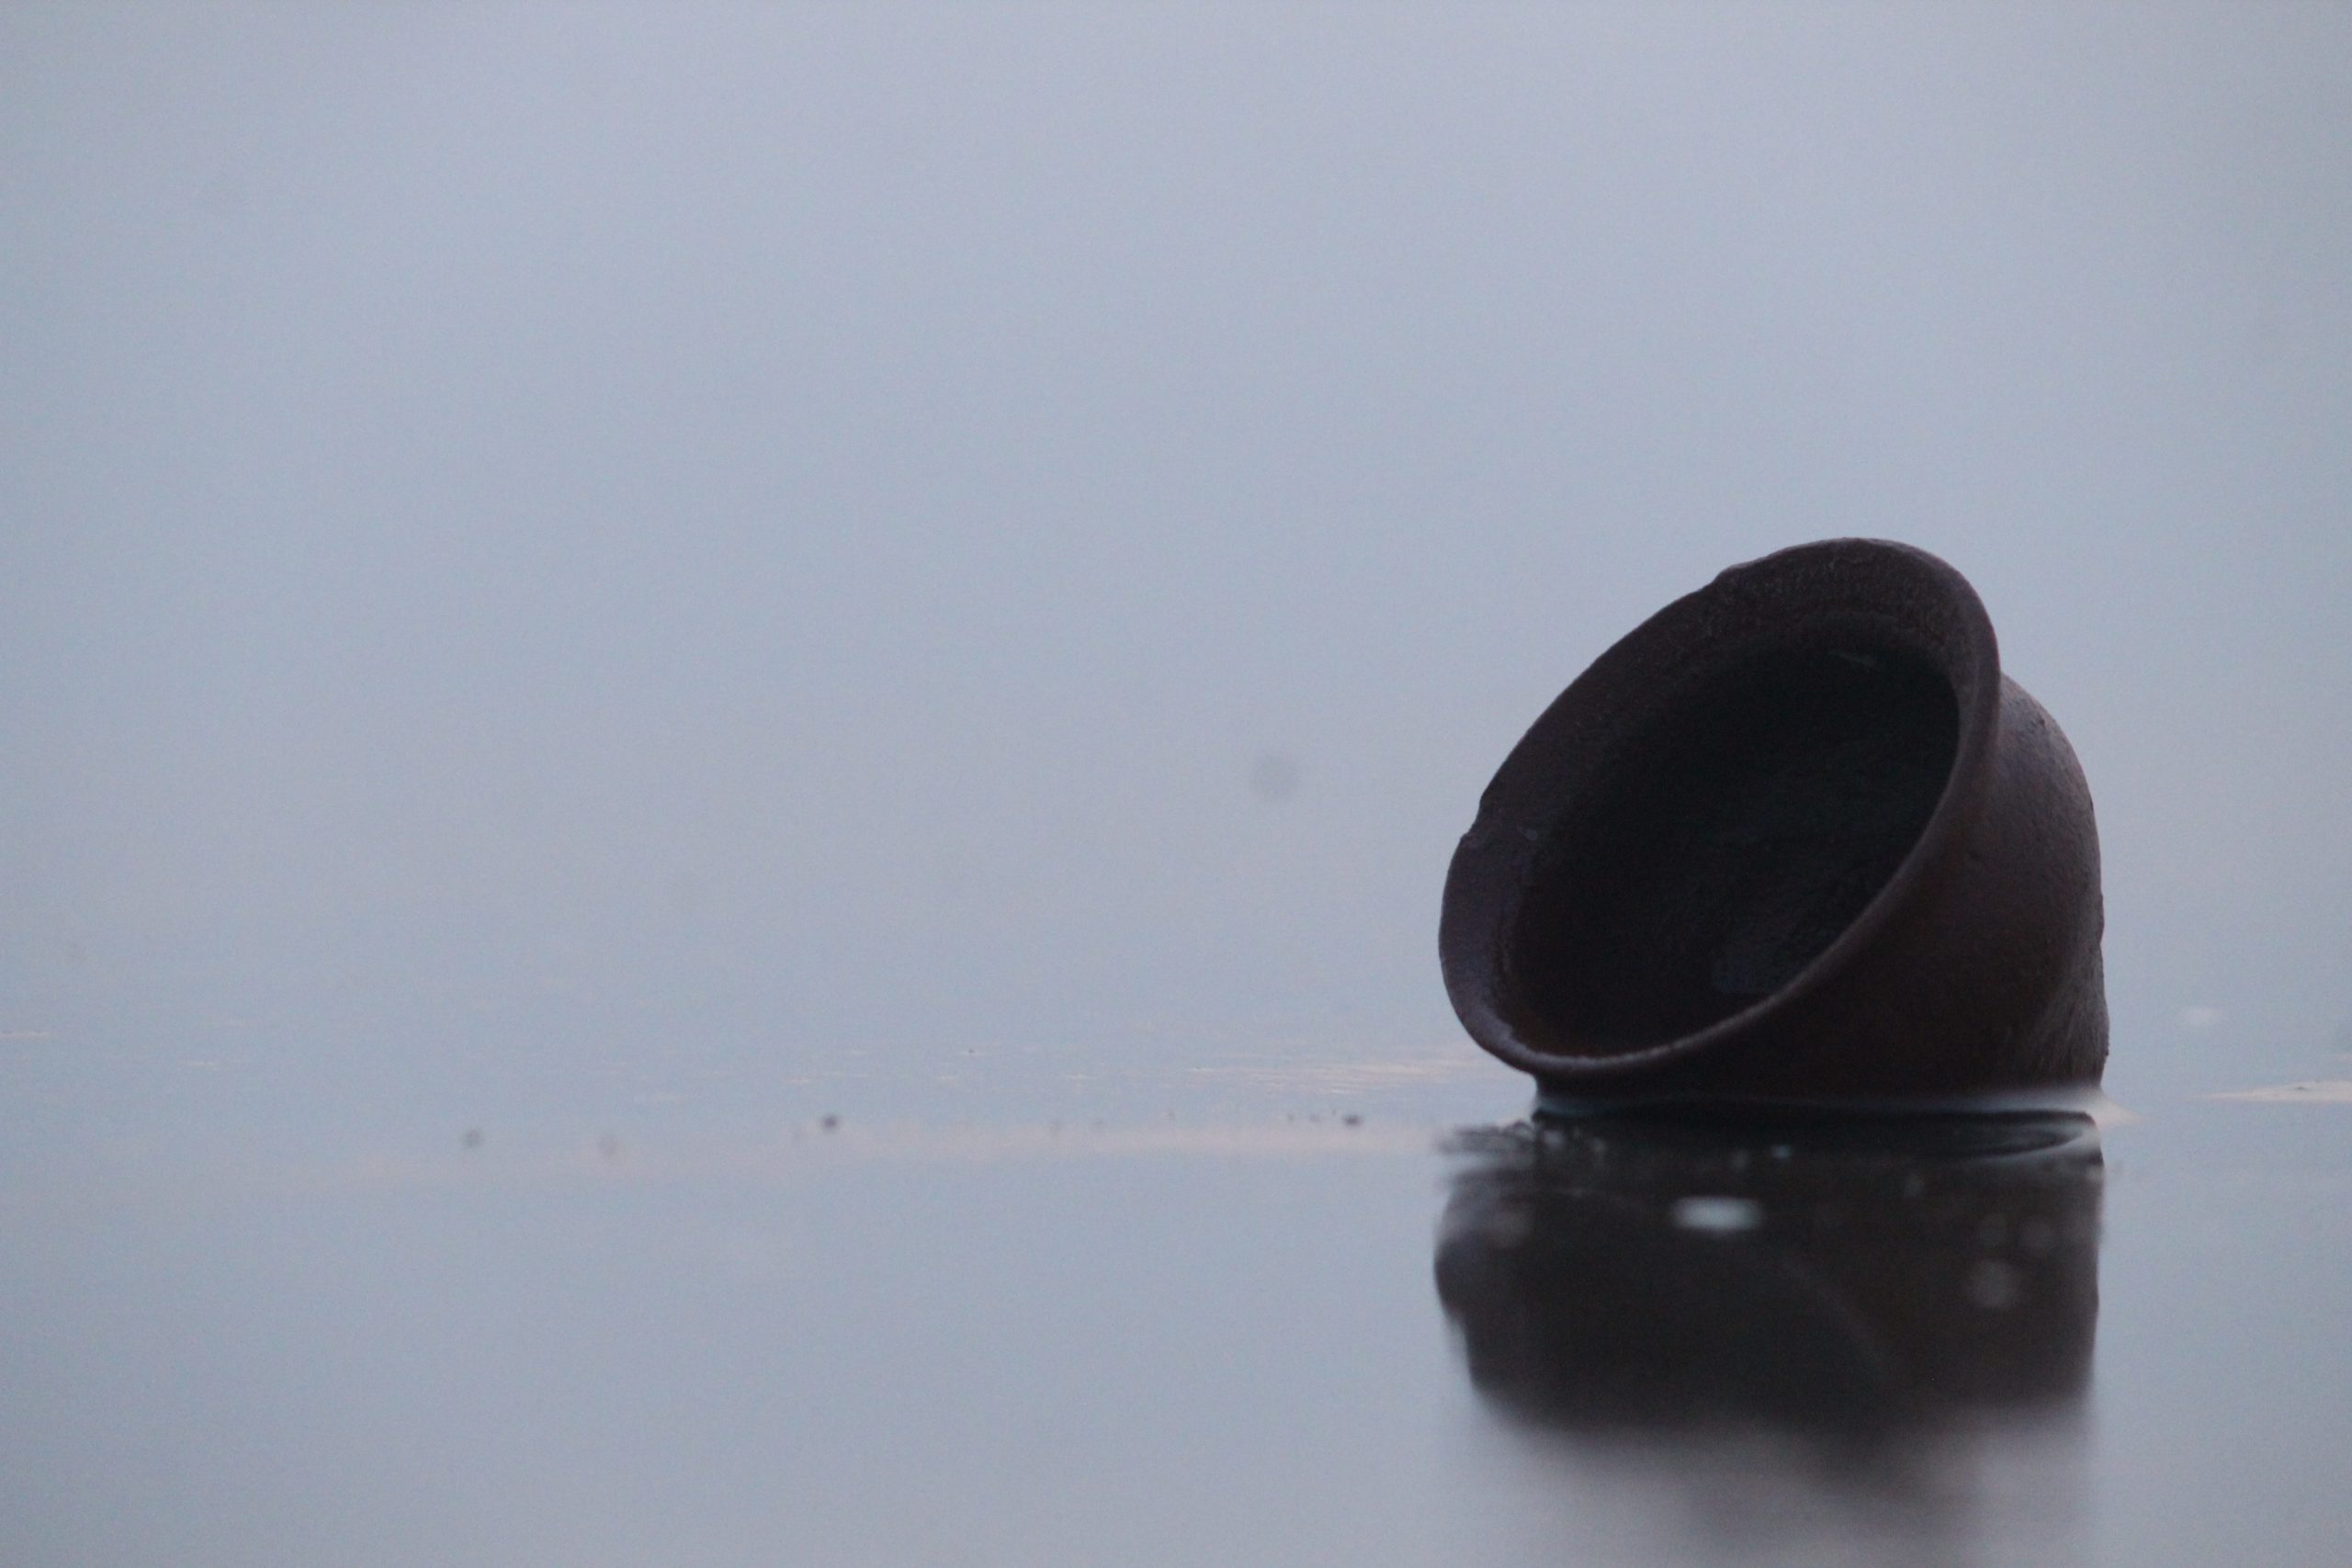 A clay cup in water